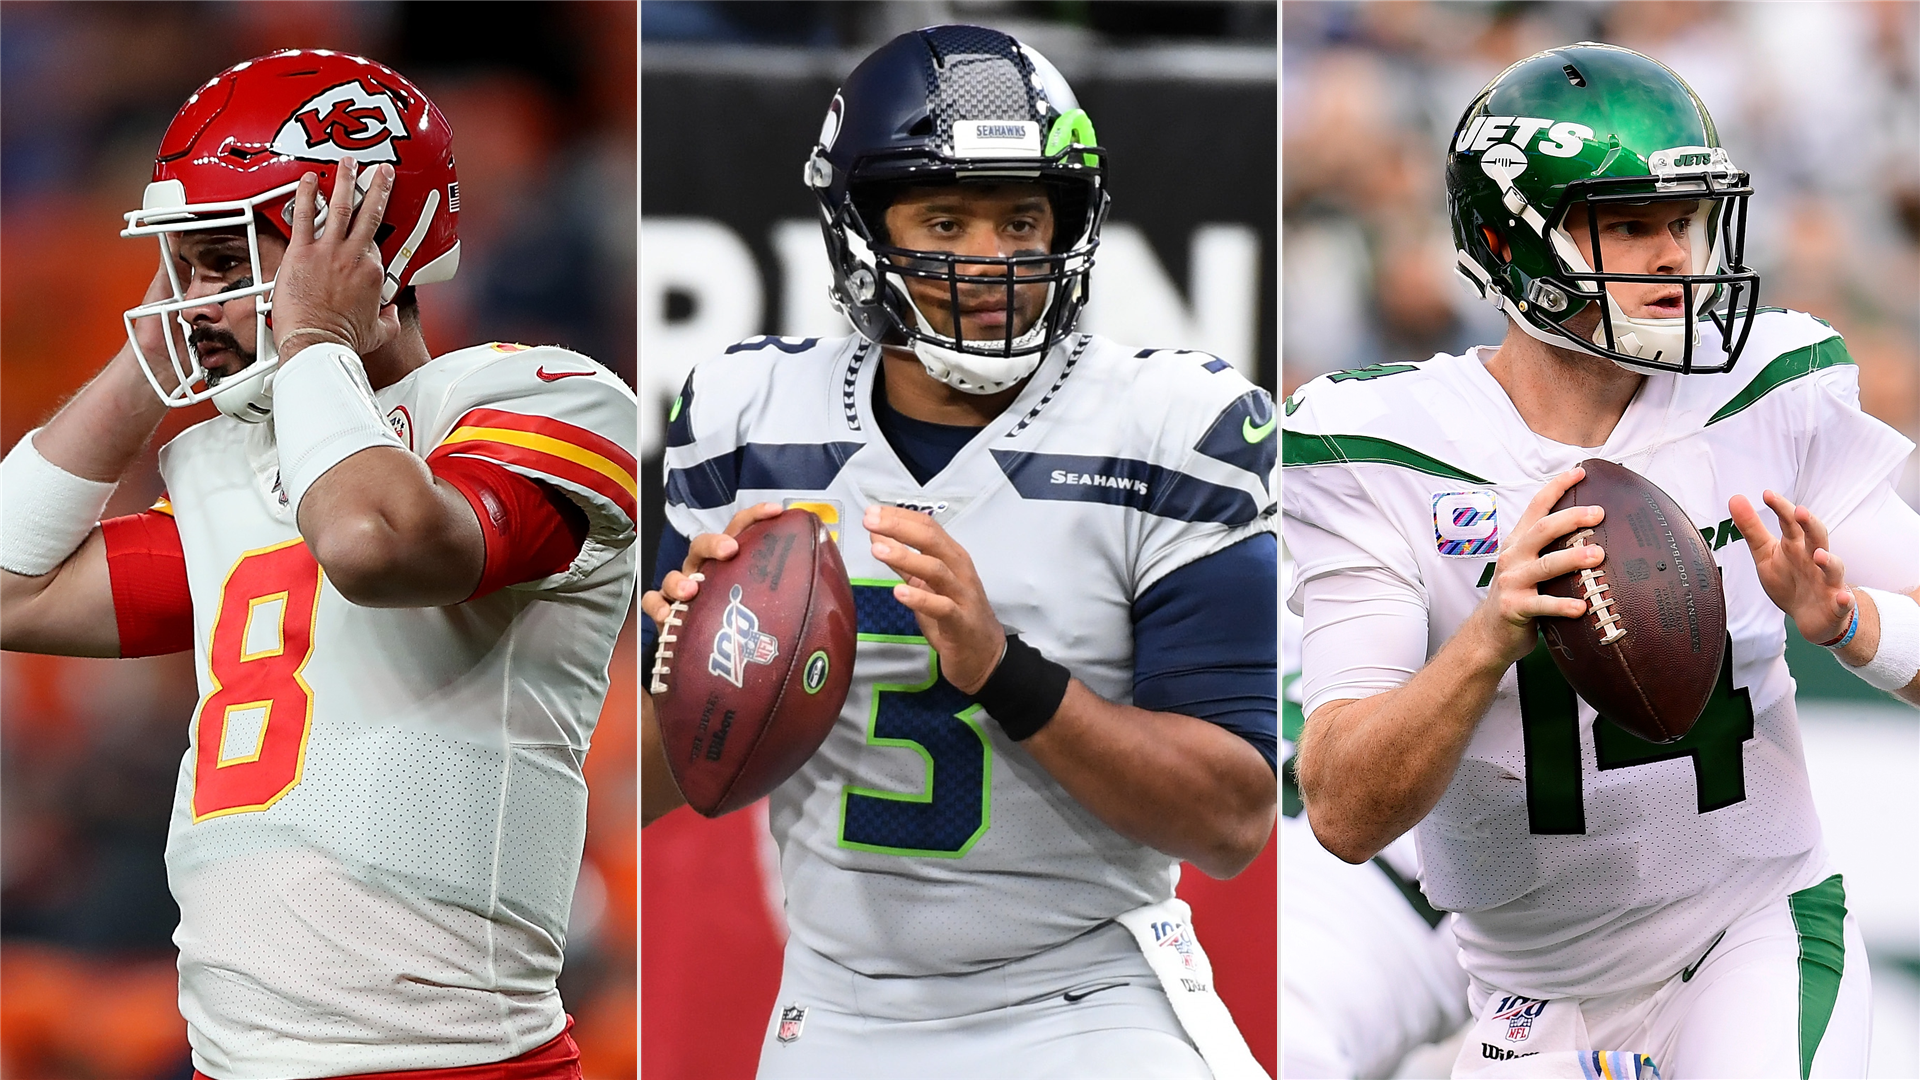 Nfl Qb Power Rankings Russell Wilson New No 1 After